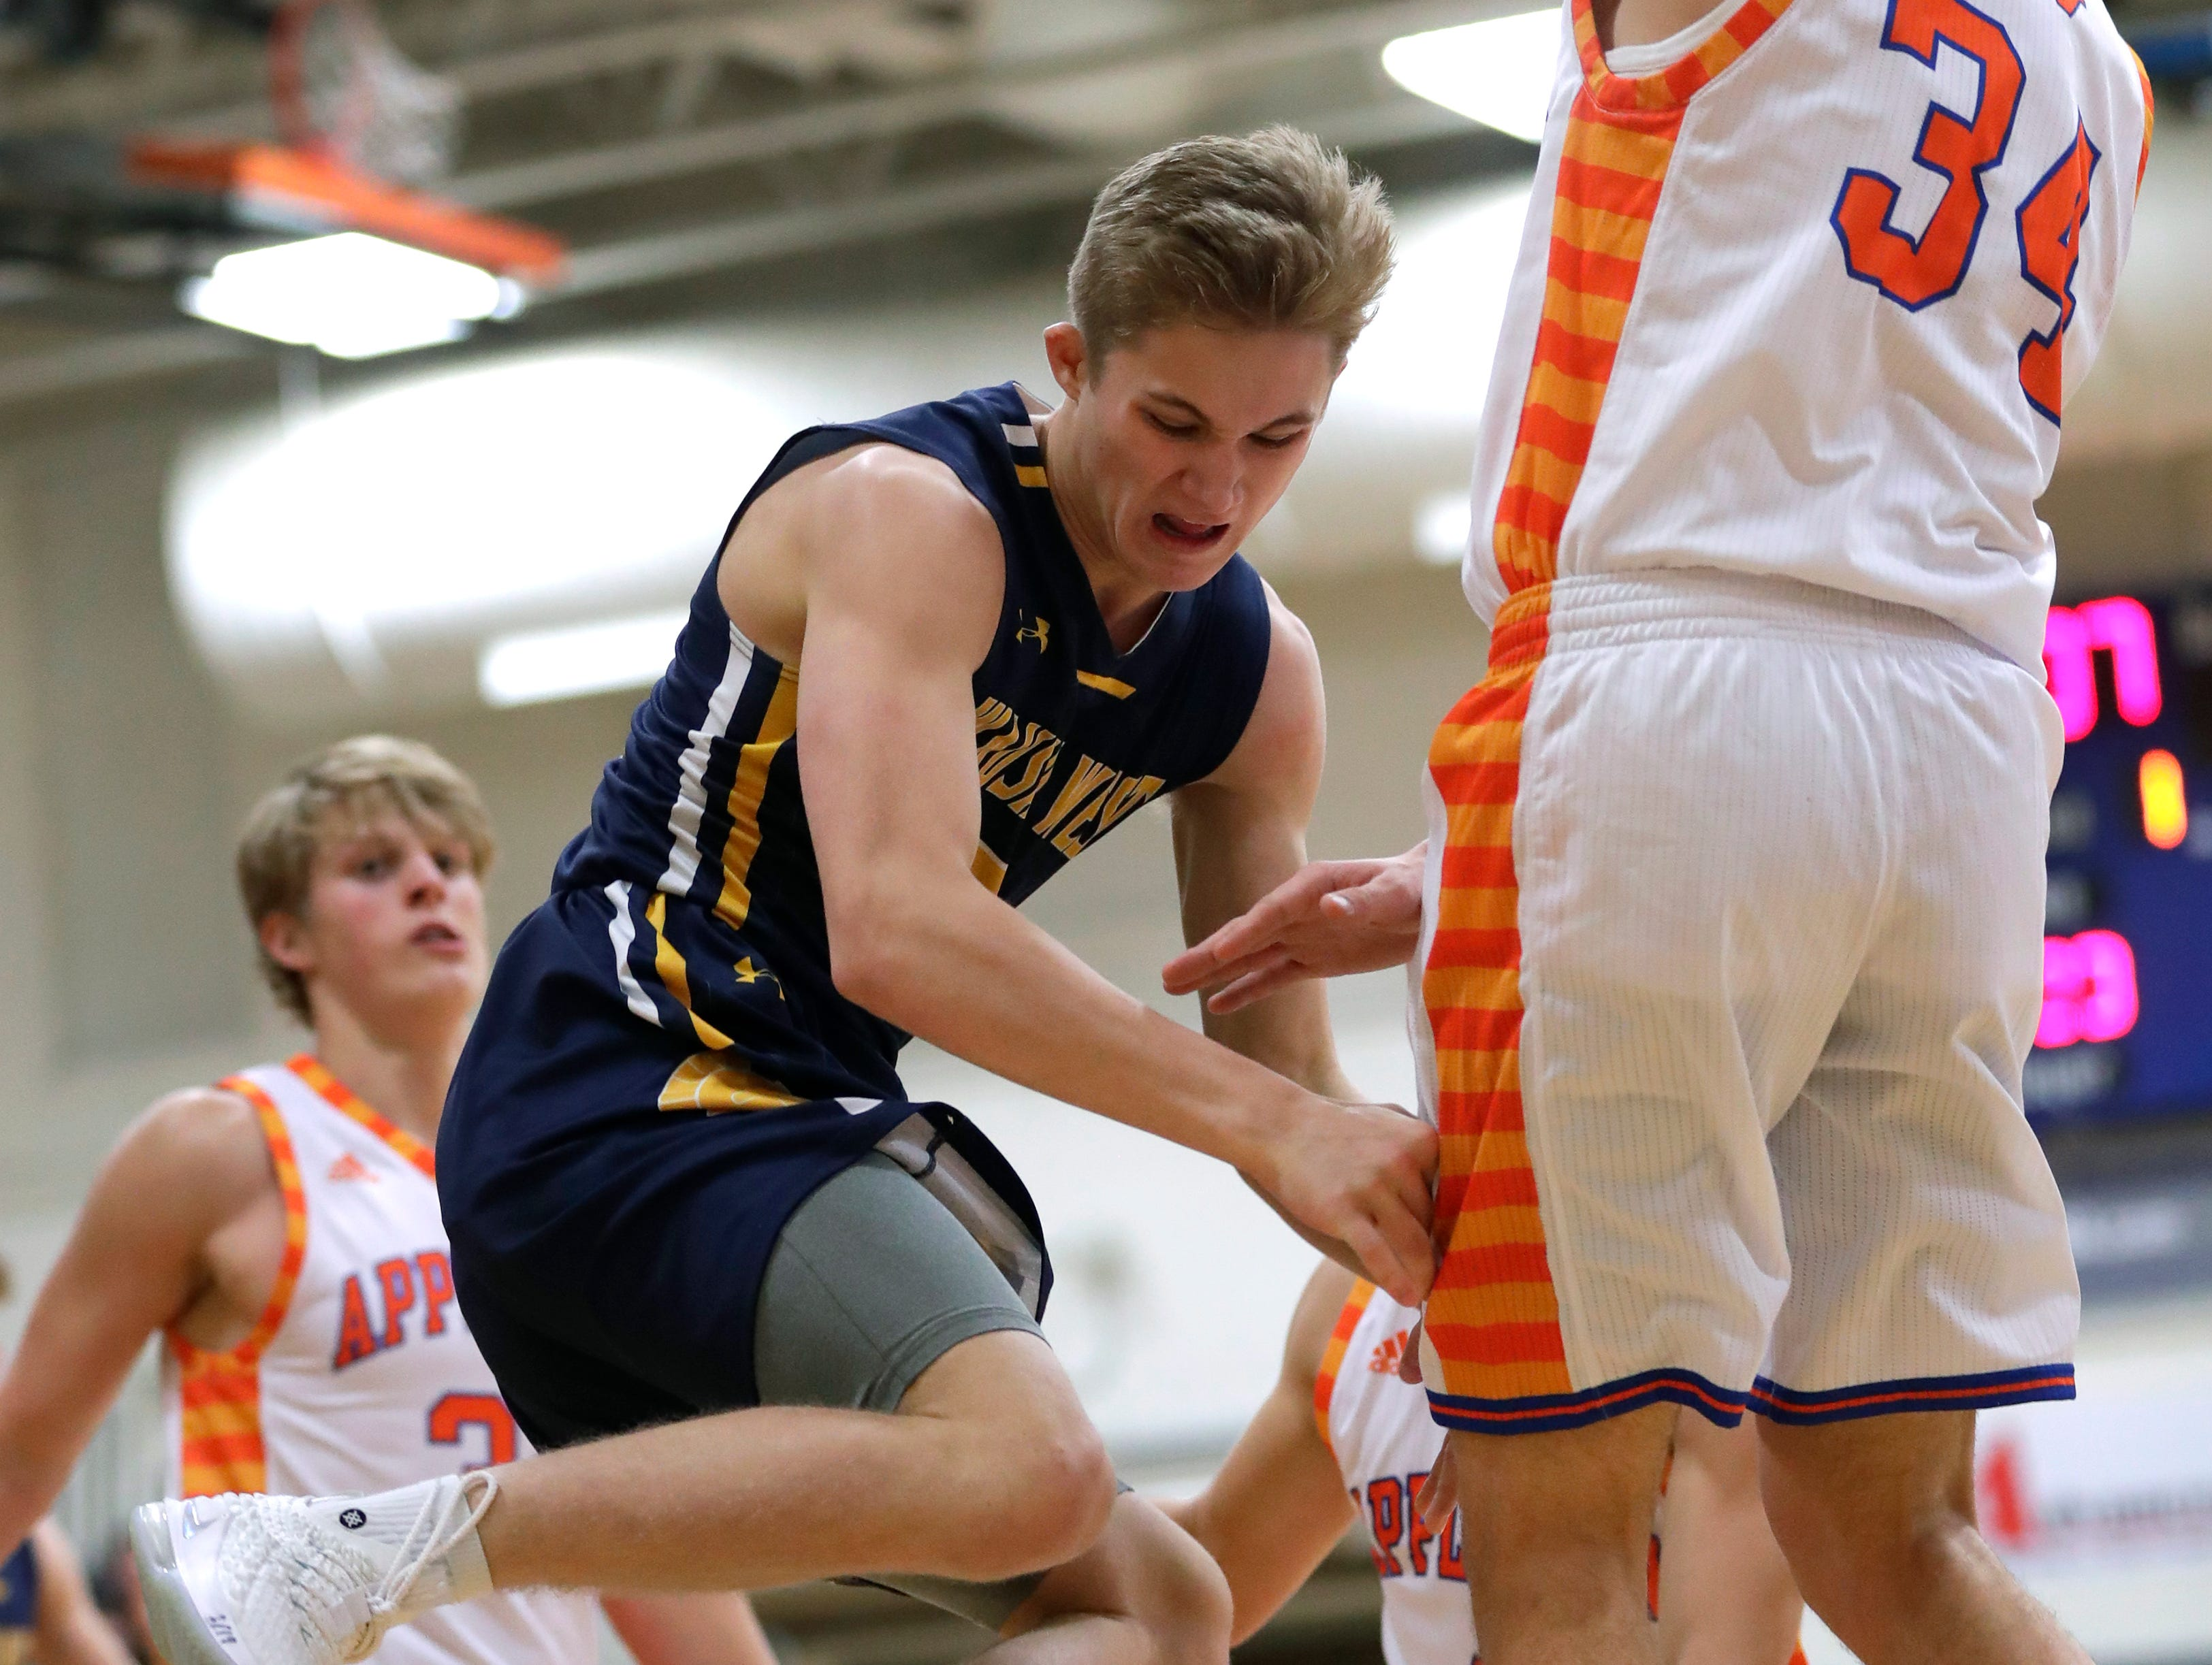 Wausau West High School's Mitchell Zahurones (2) is fouled as he drives to the basket against Appleton West  High School's Spencer Mellberg (34) during their boys basketball game Friday, December 28, 2018, in Appleton, Wis. 